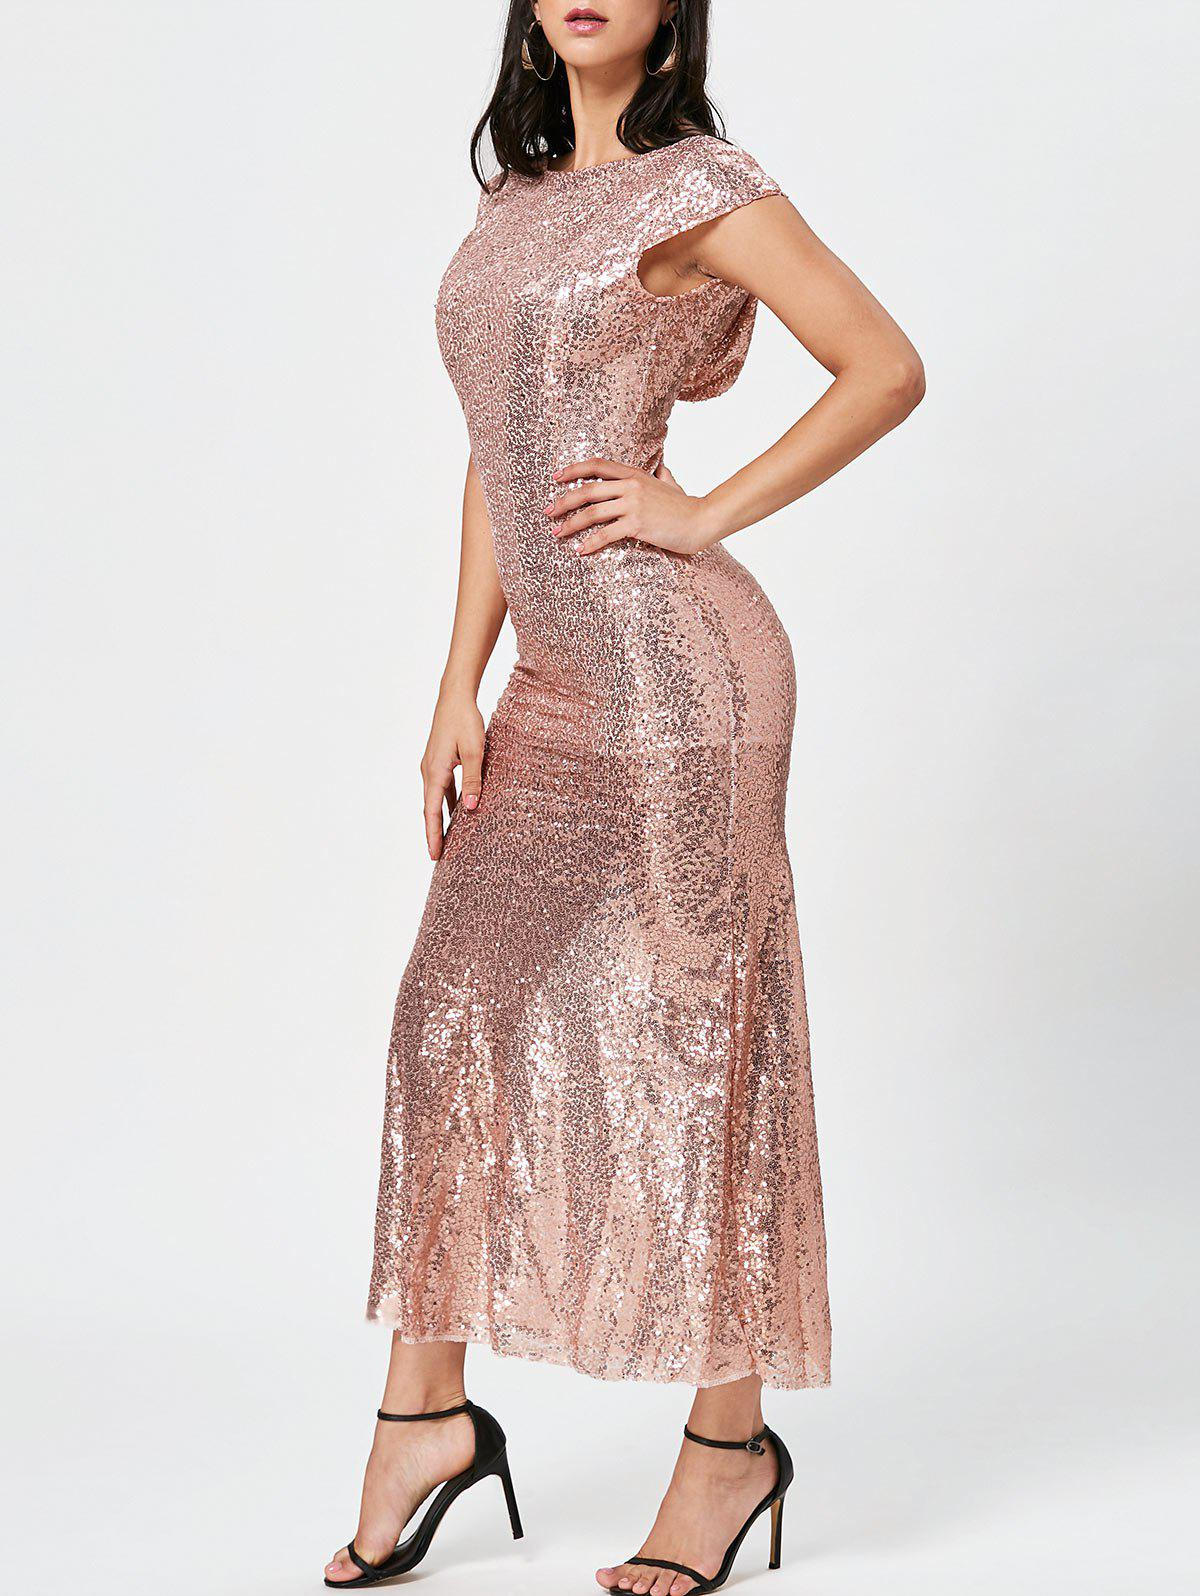 Unique Sexy Jewel Neck Short Sleeve Sequined Backless Dress For Women